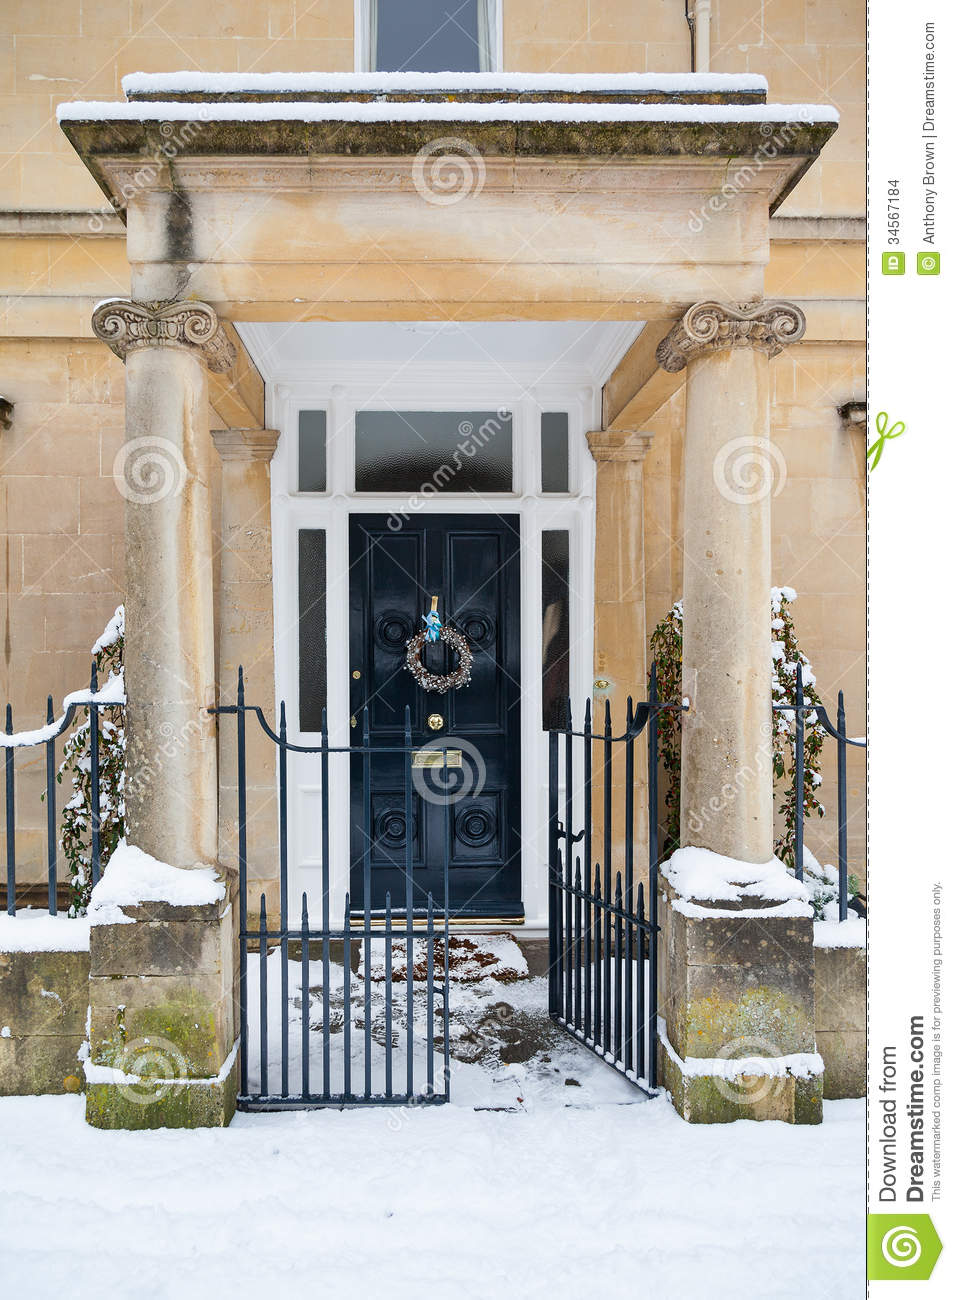 Snowy Christmas Entrance Stock Photo Image Of Vertical